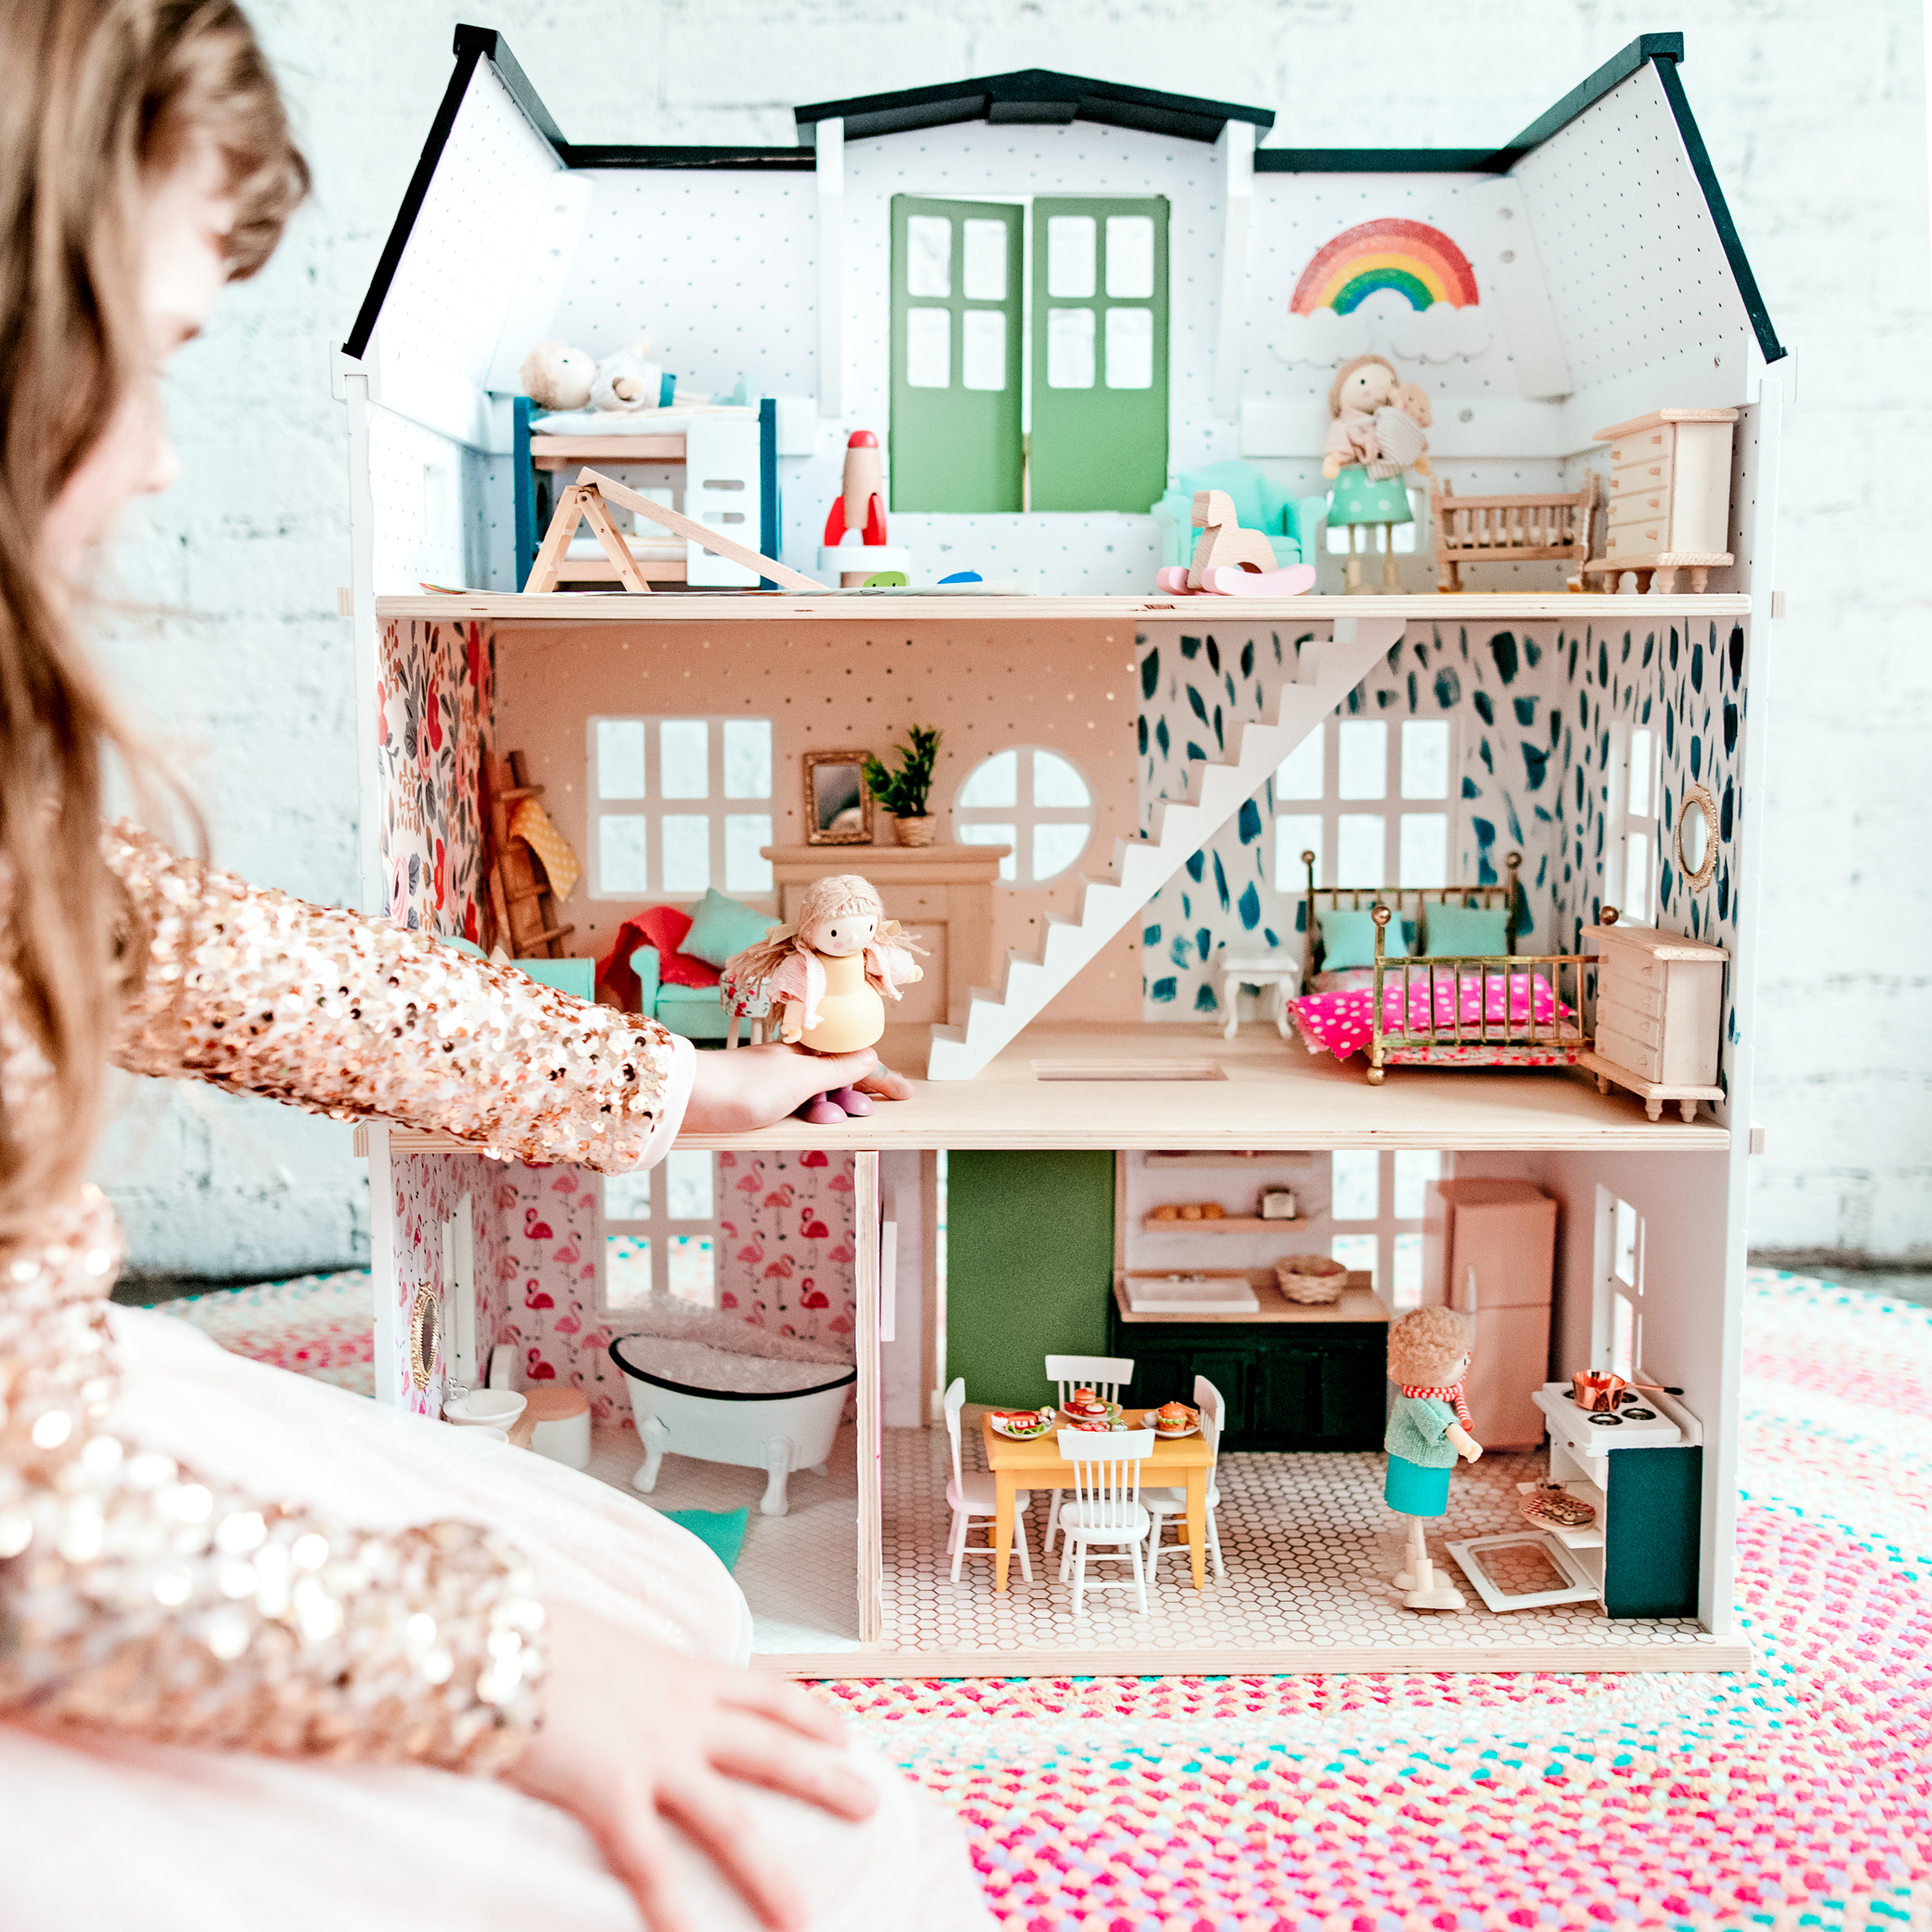 Bright and Colorful DIY Hearth and Hand Dollhouse Makeover; tour, decor source list, and tips for renovating a dollhouse!